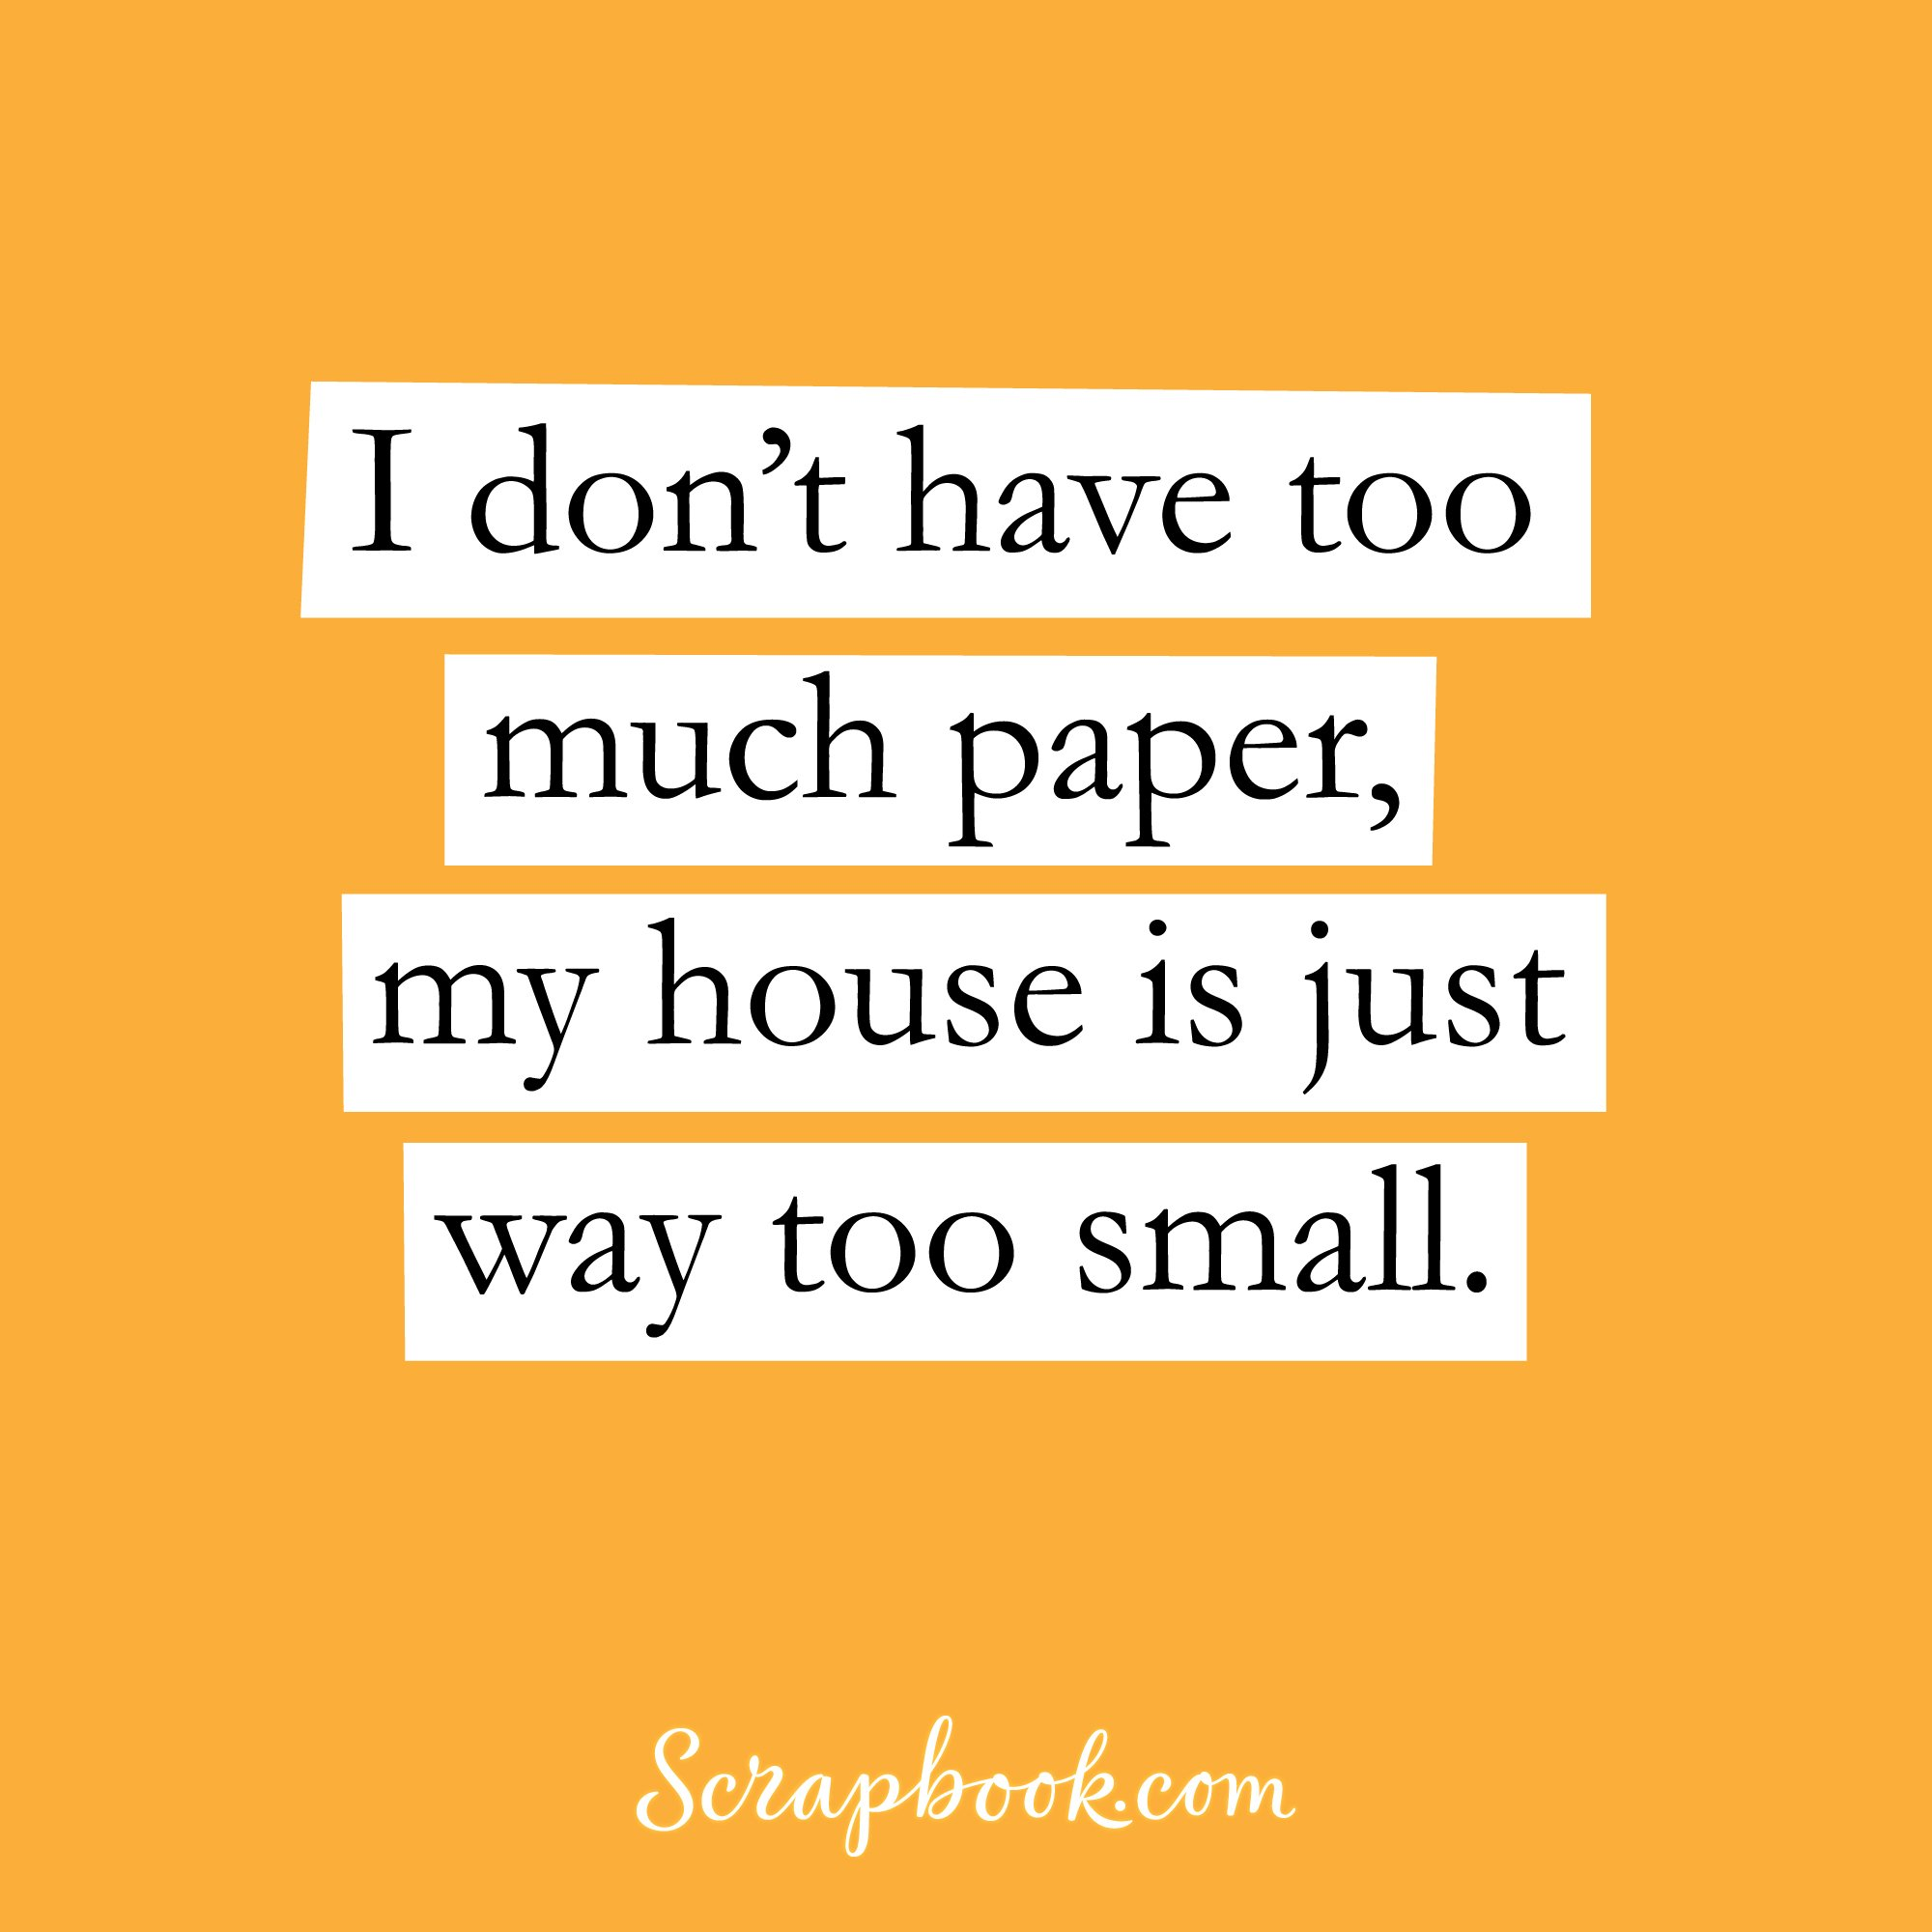 I don't have too much paper, my house is just too small.